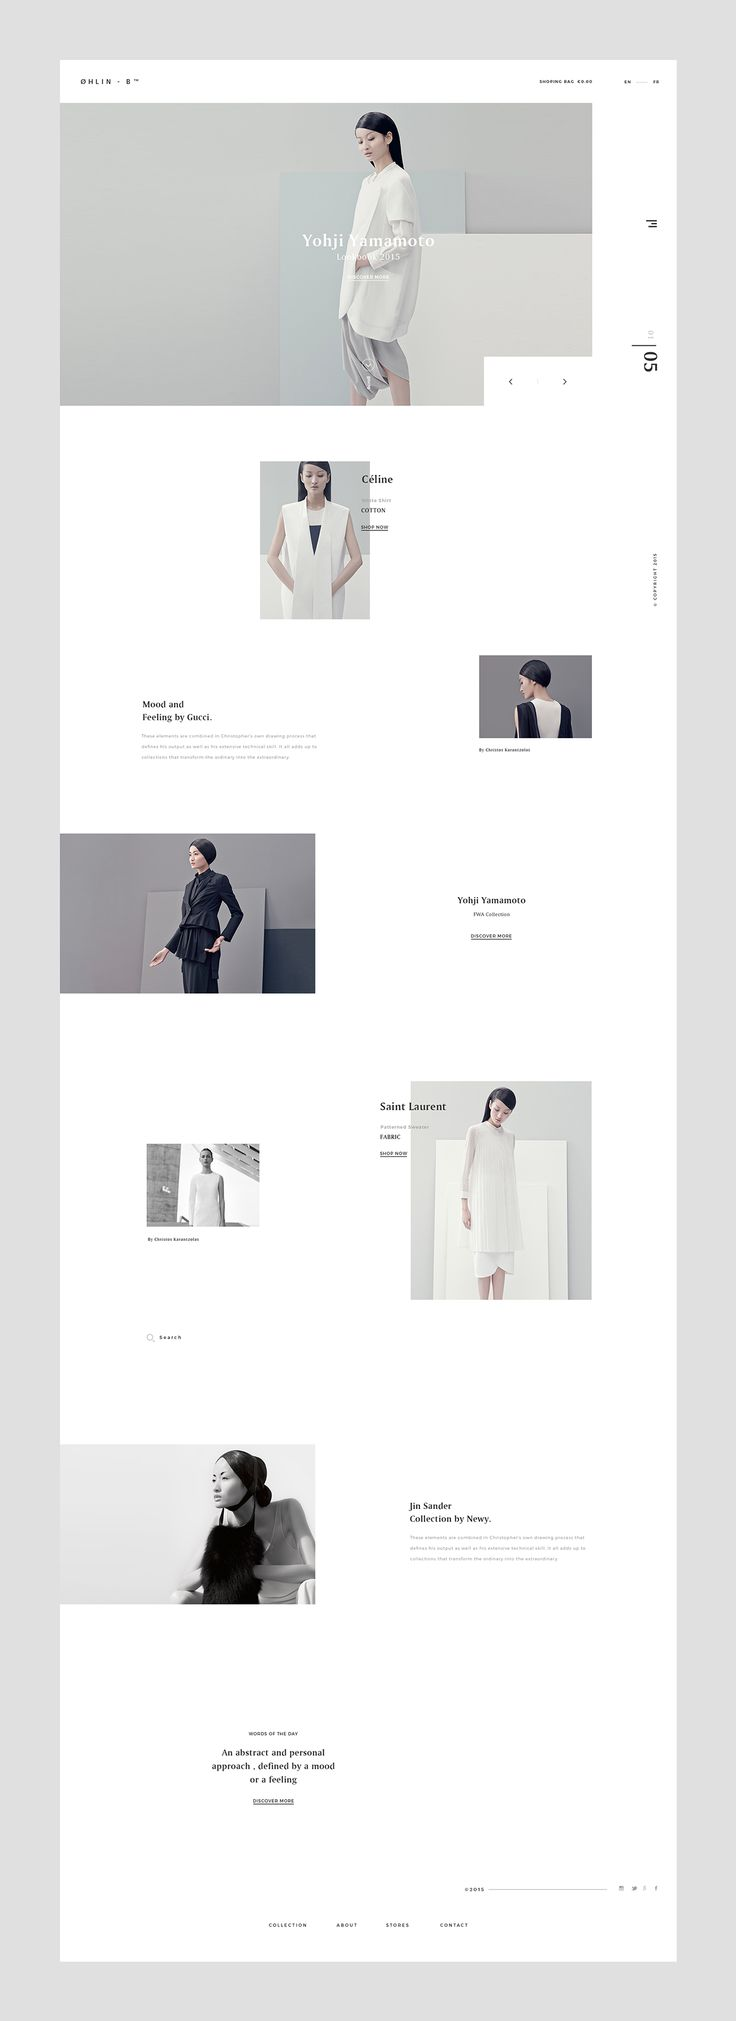 White and minimalistic website layout, that reflects the contemporary style of the private bookstore.